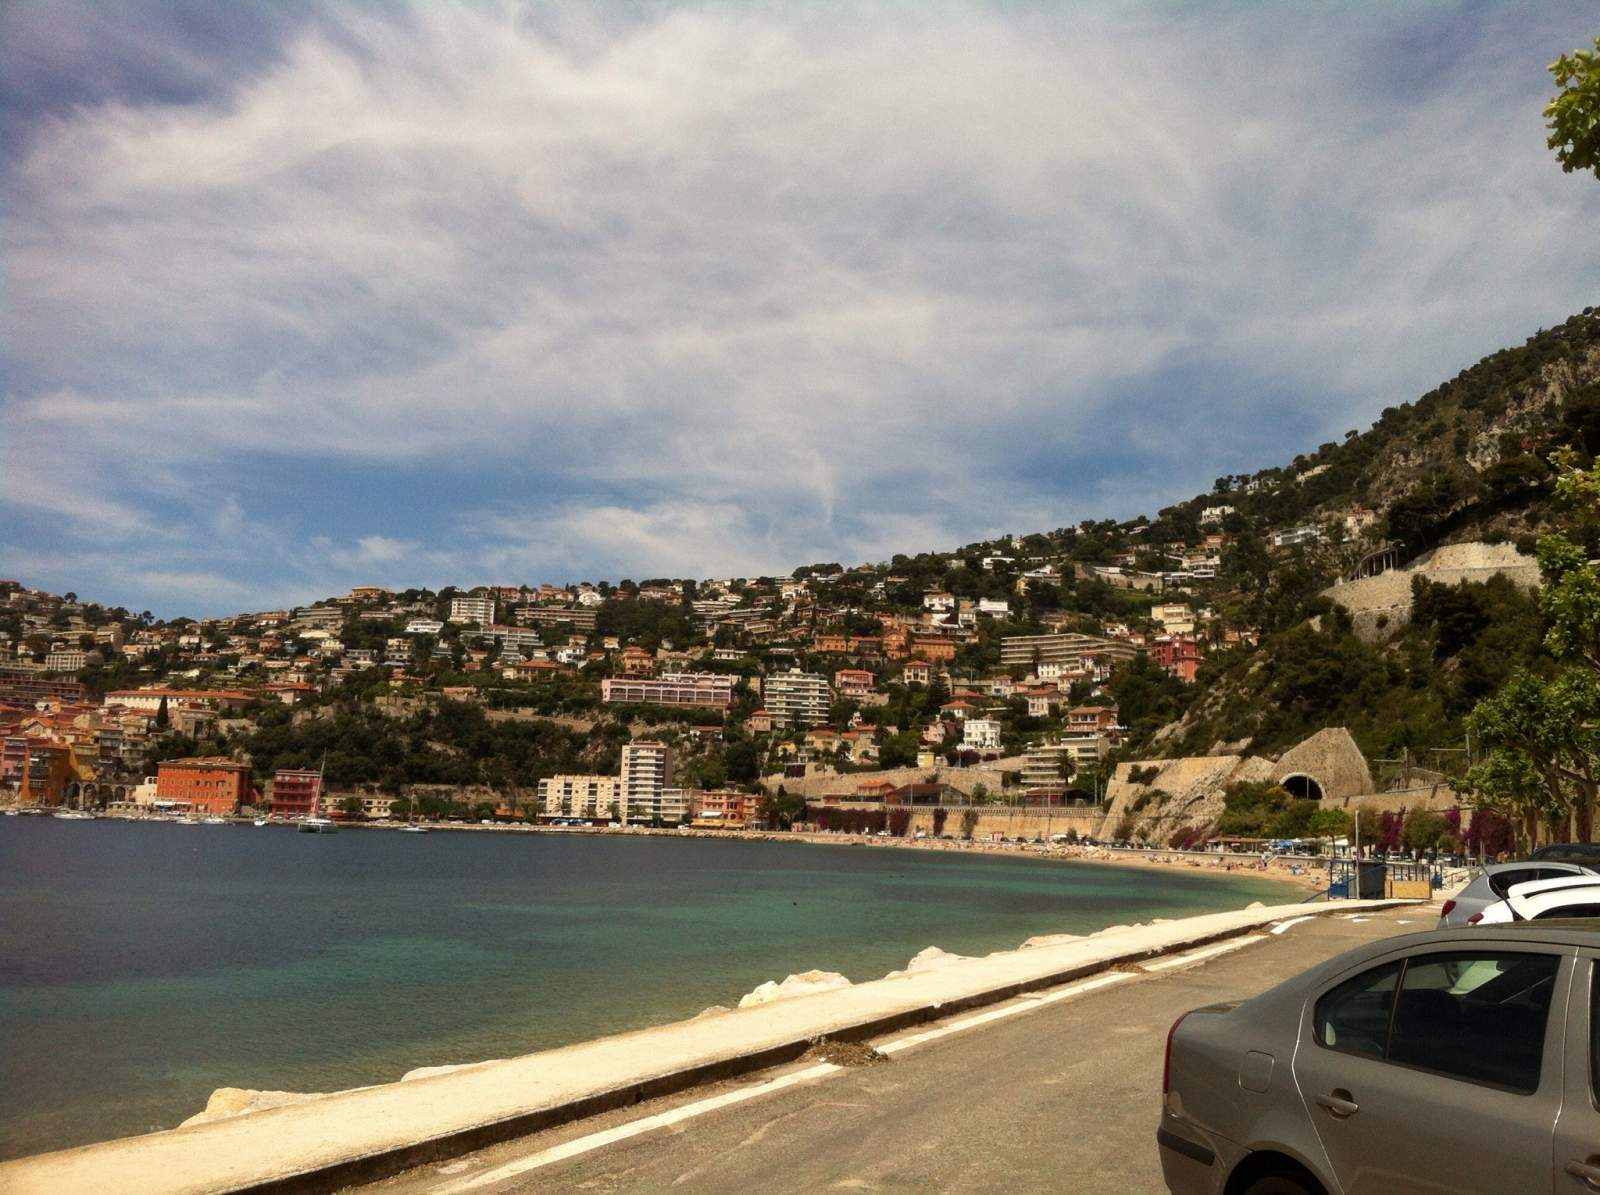 villefranche sur mer south of france day trip from nice beach and view of town